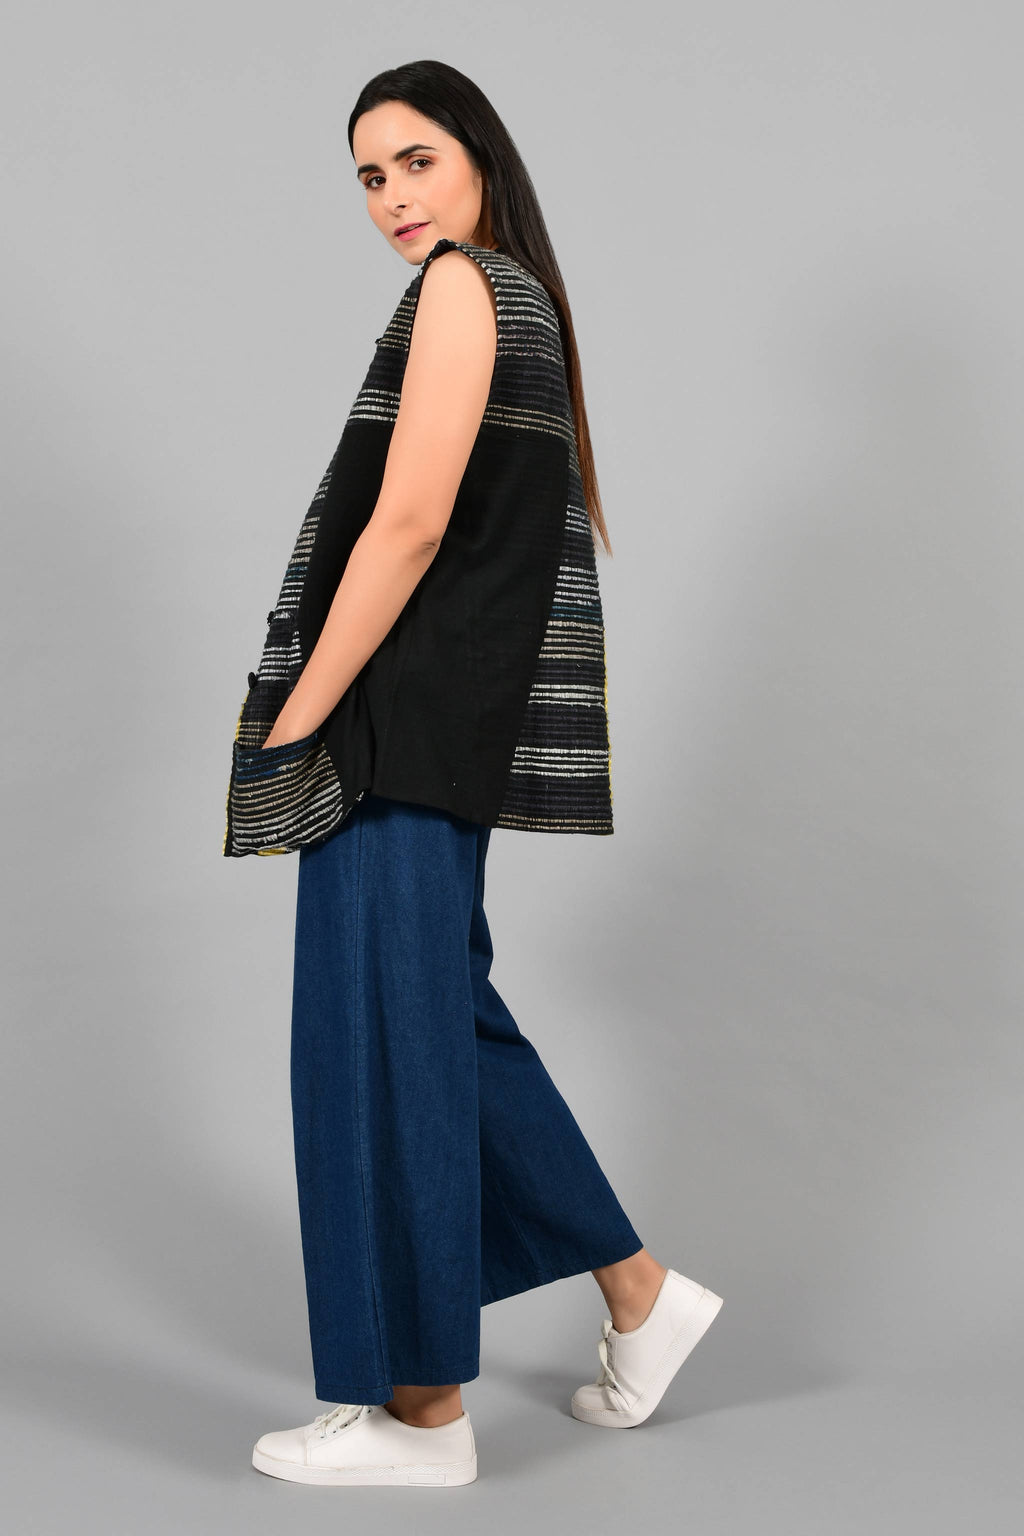 Side pose of an Indian Womenswear female model wearing black upcycled sleeveless jacket with a yellow stripe made with handspun and handwoven cotton by Cotton Rack.